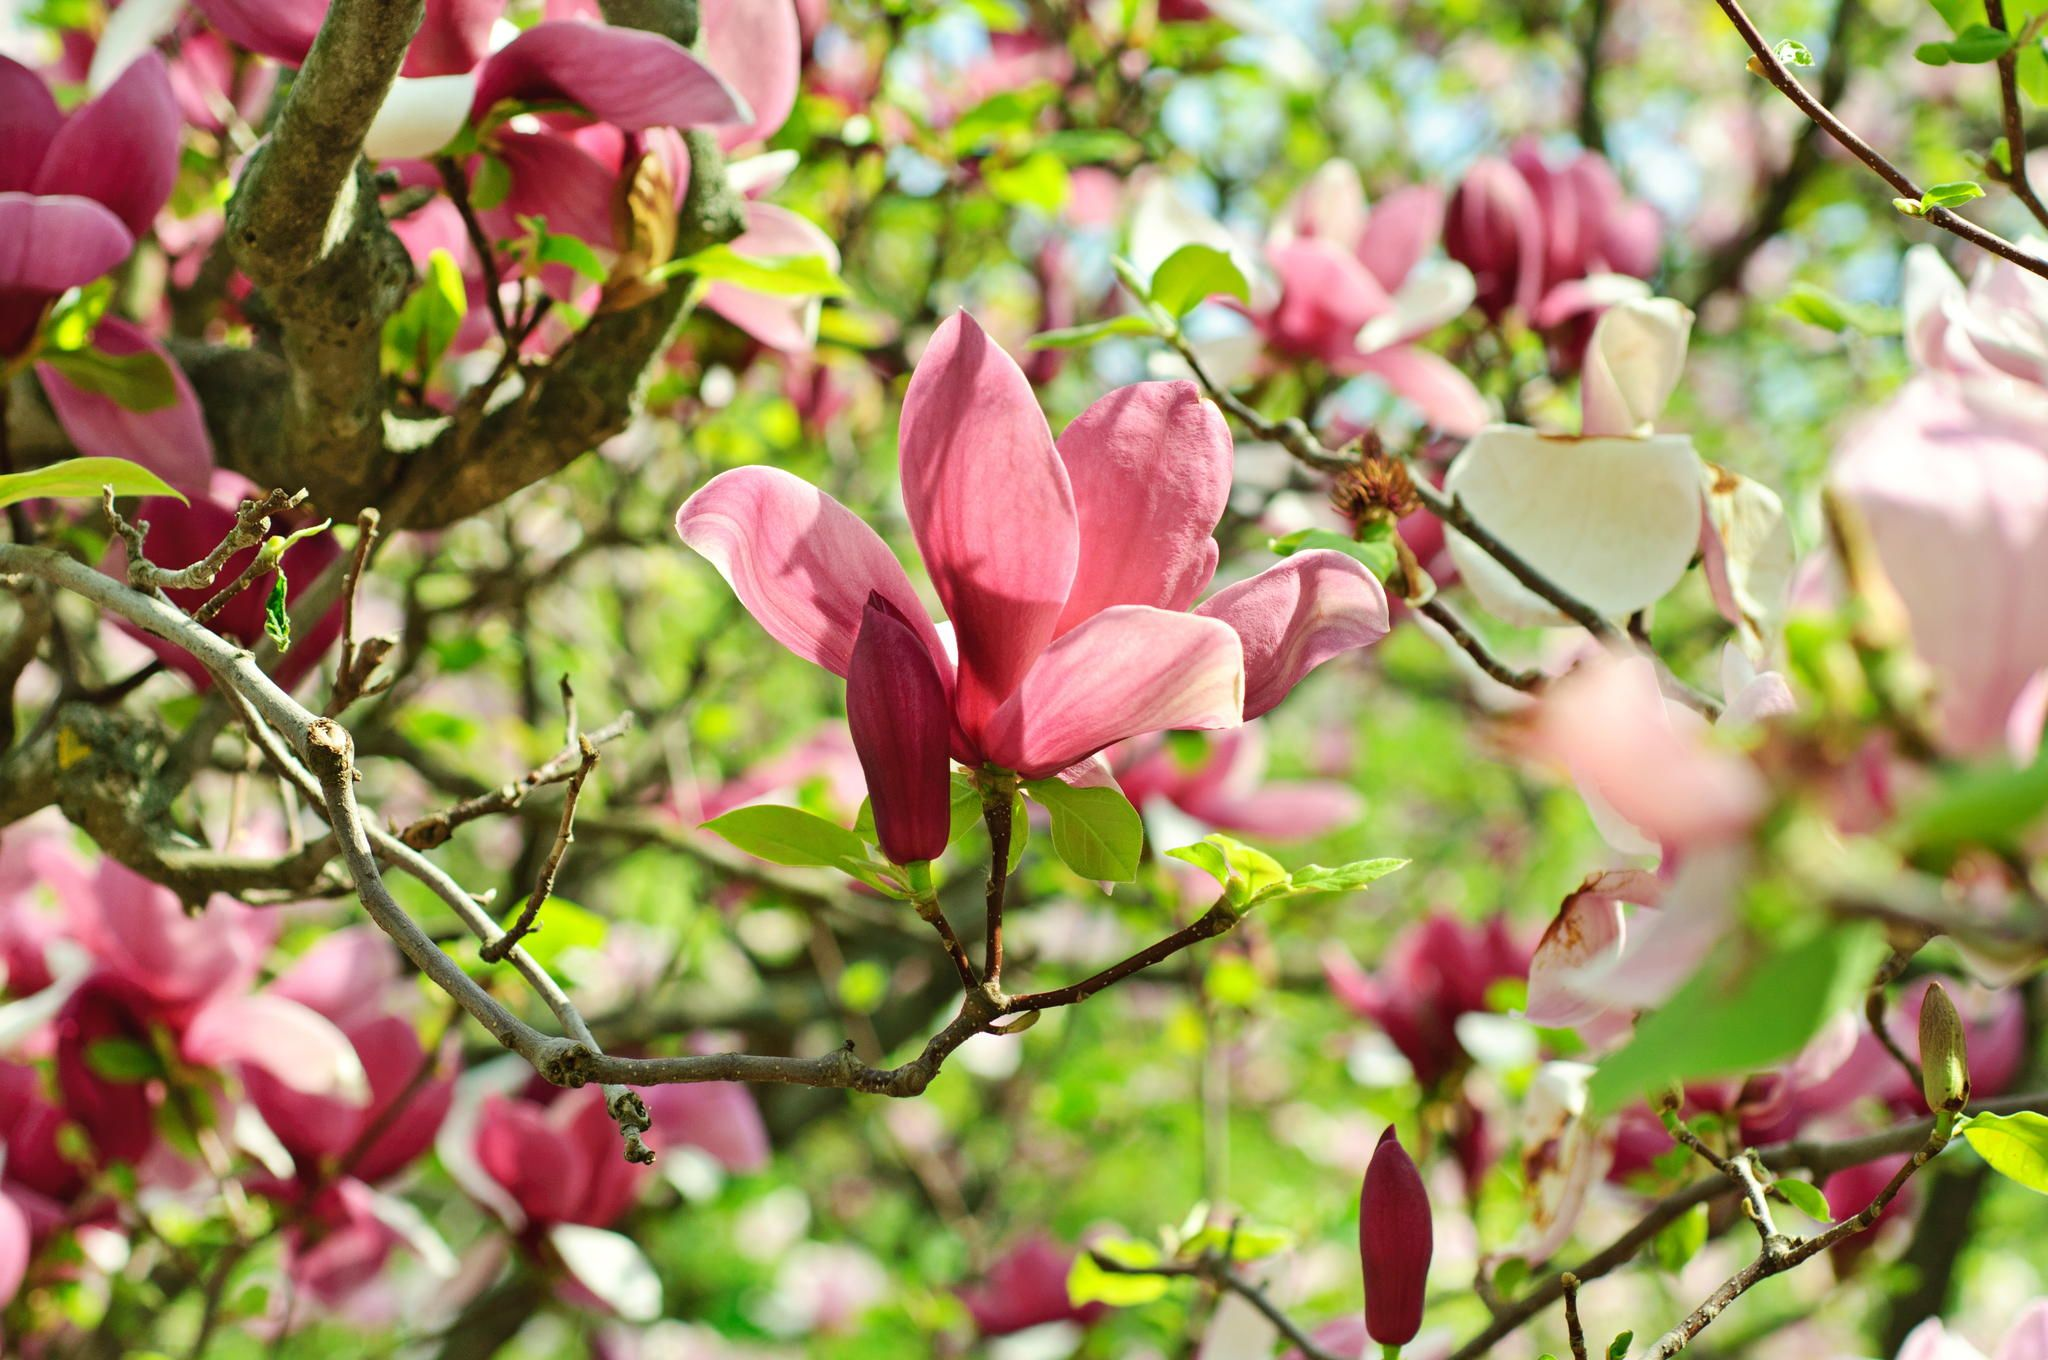 Magnolia flowers by Roksana Bashyrova on 500px